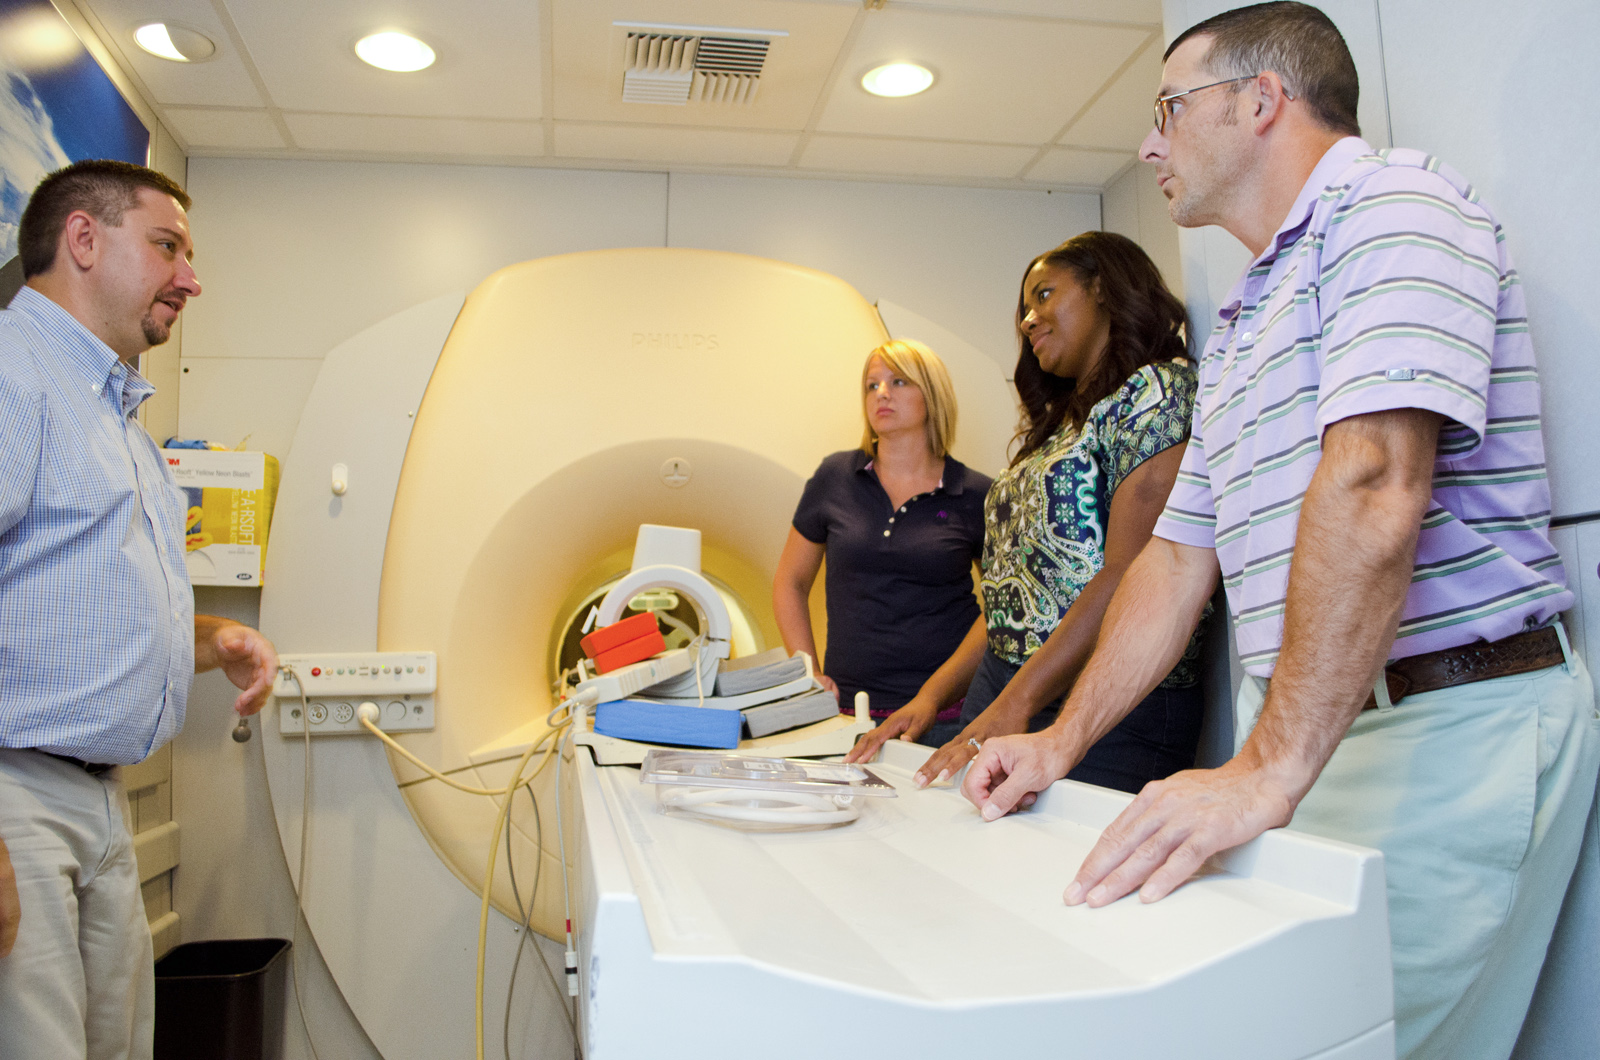 MRI students learn from an instructor in a mobile MRI unit on campus in Battle Creek.